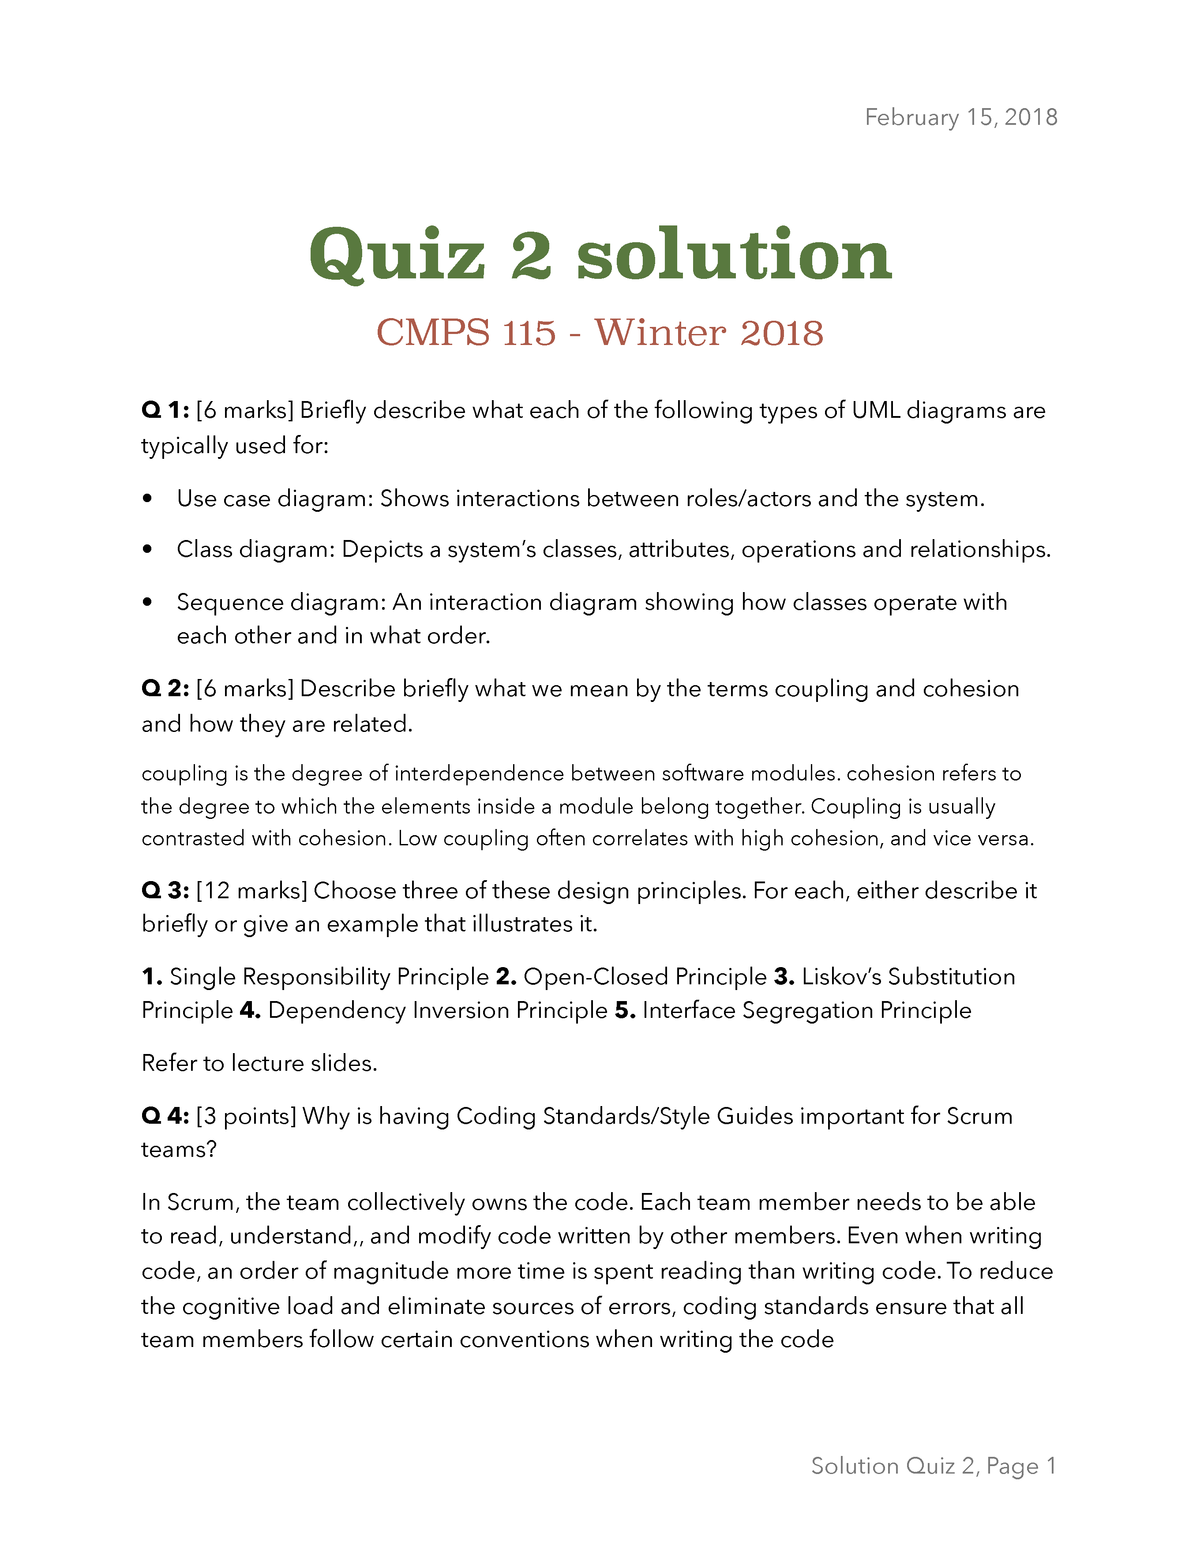 Quiz 2 Winter 2018 Questions And Answers Cmps 115 02 Studocu